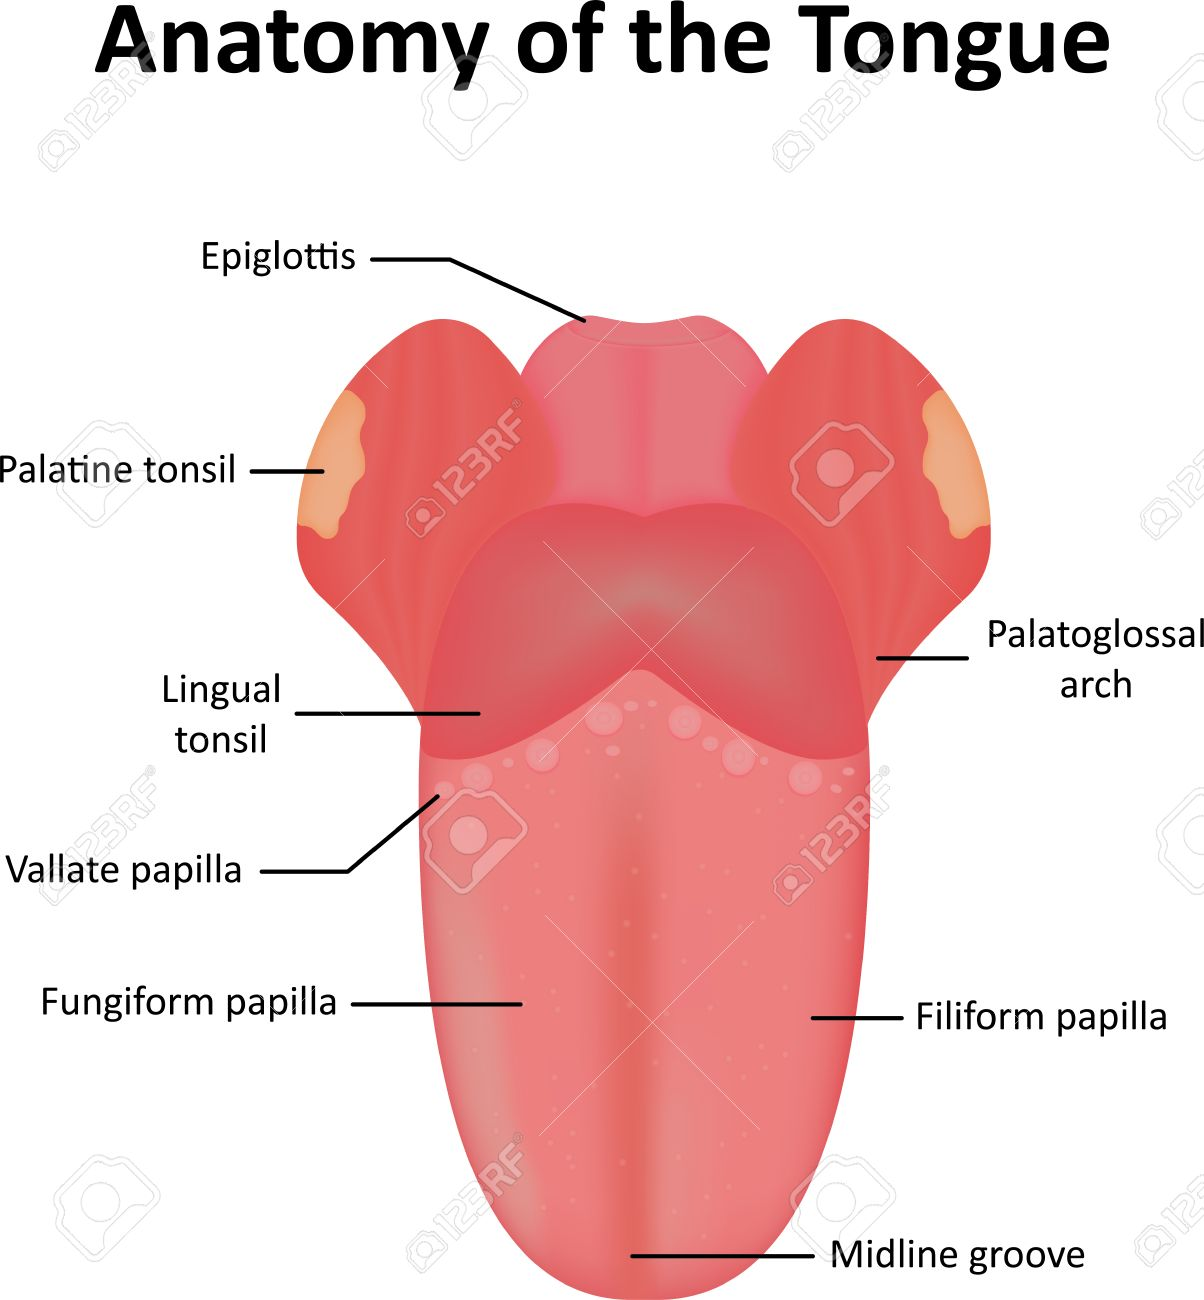 Anatomy Of The Tongue And Associated Features Stock Photo, Picture ...